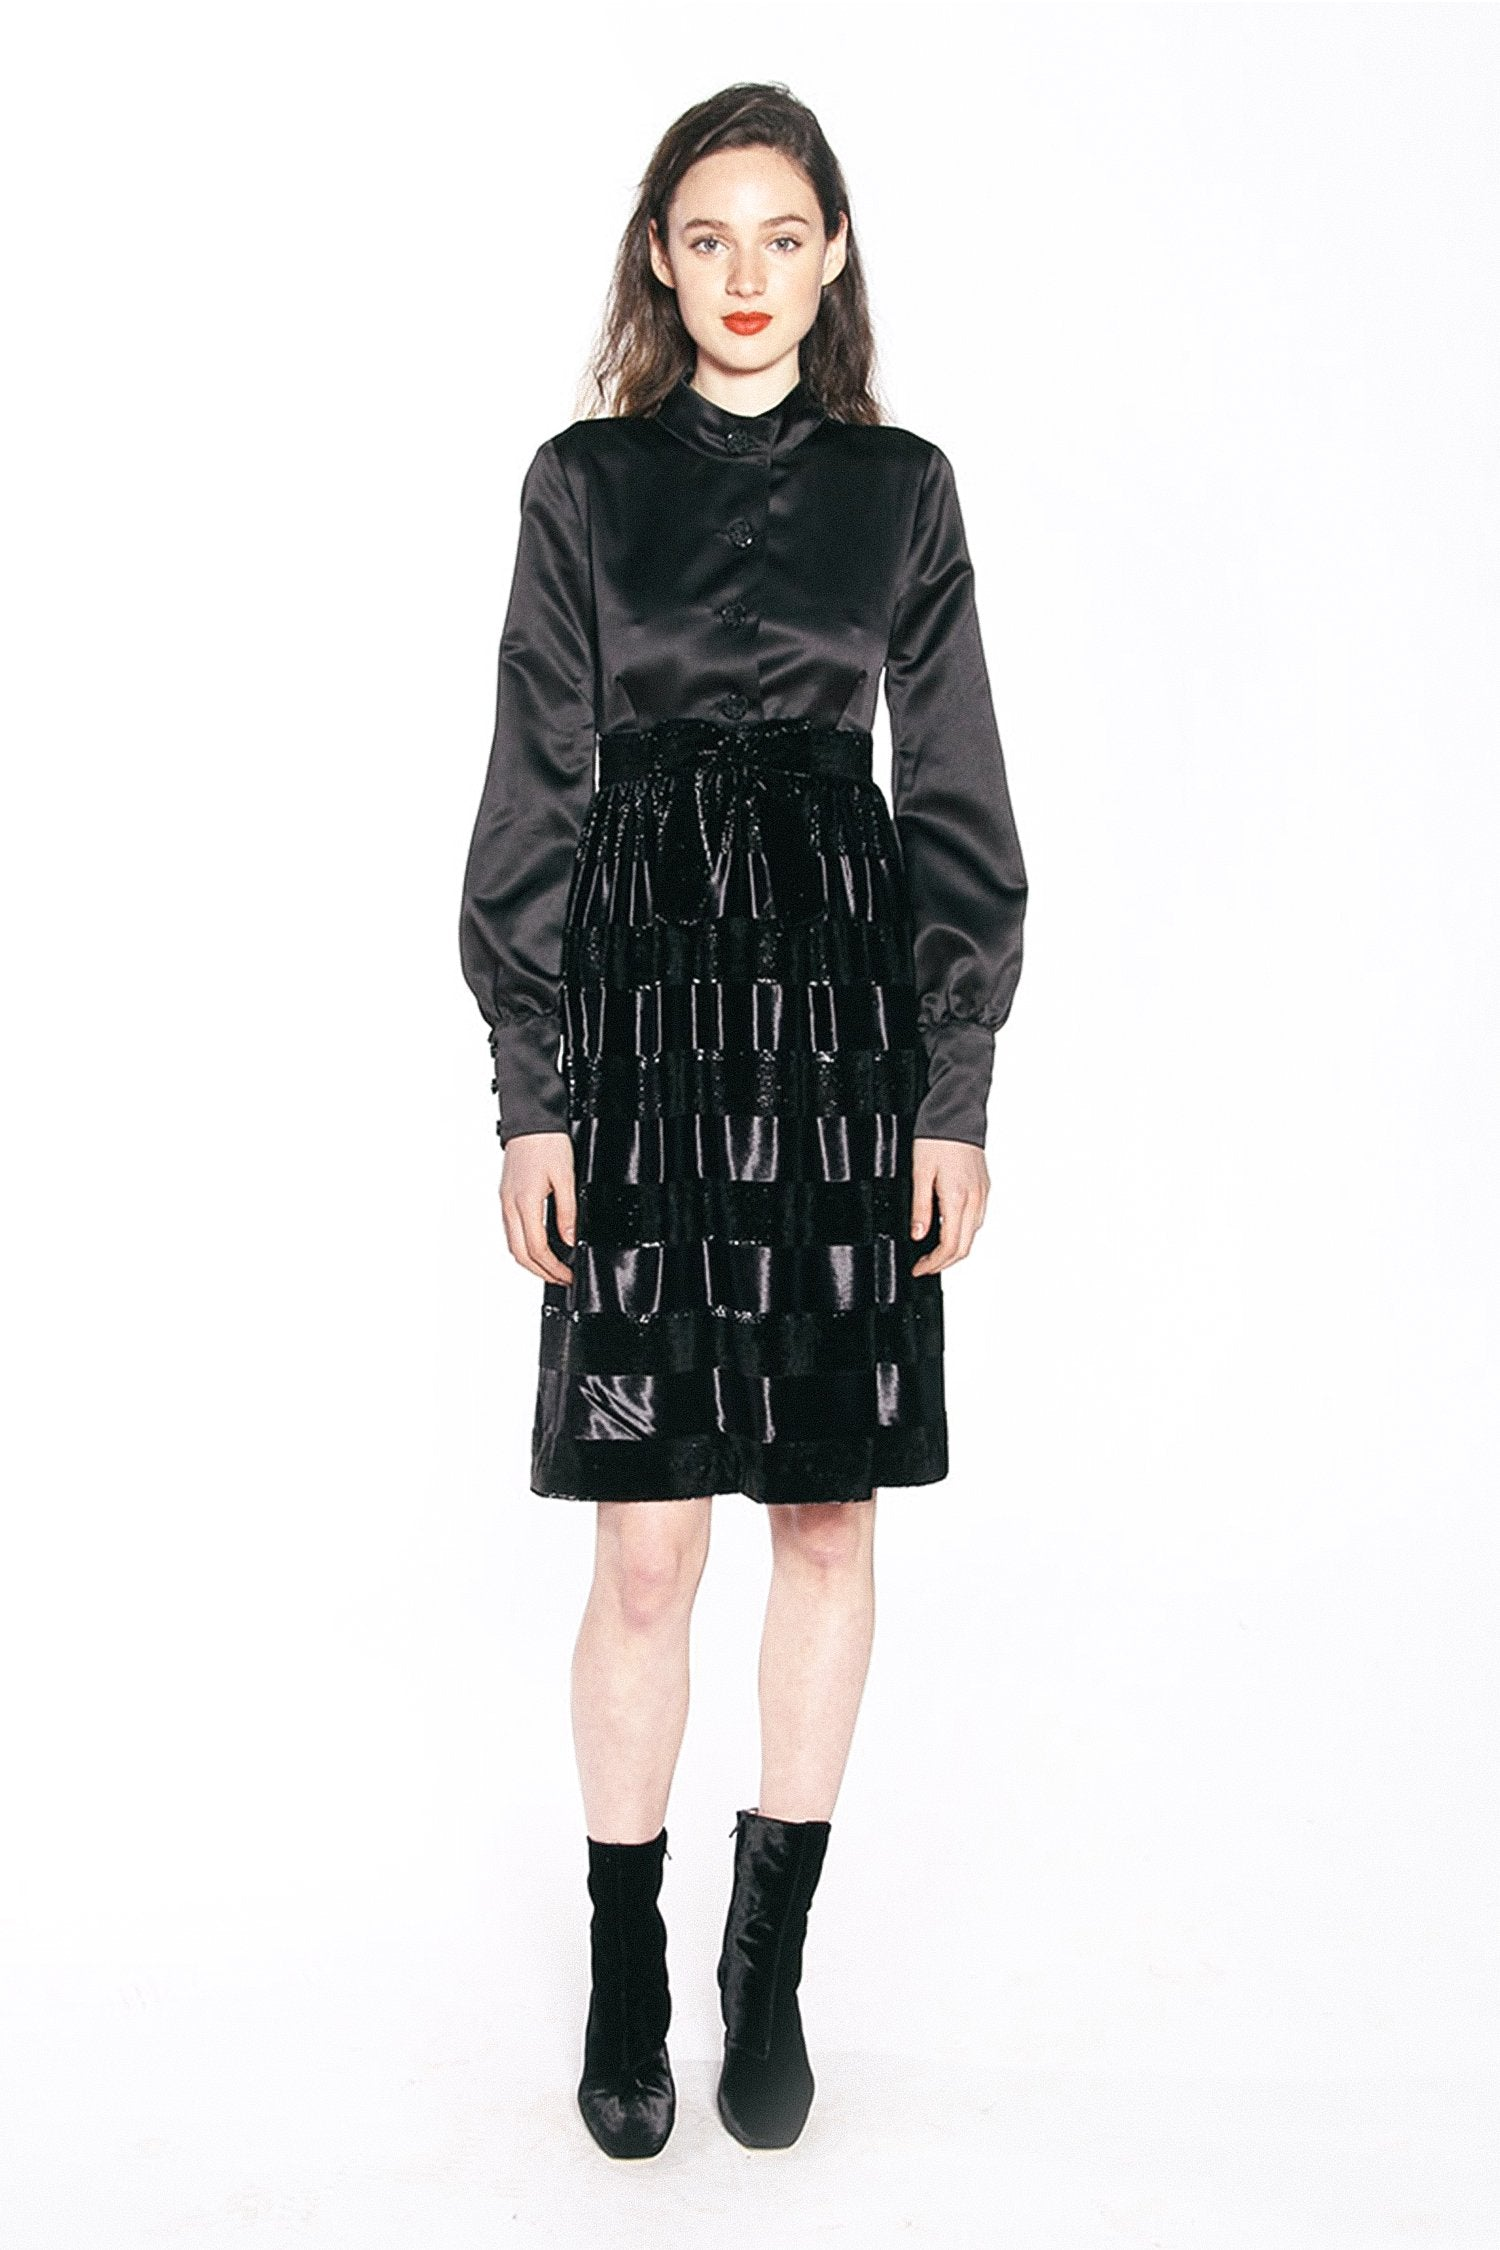 Seal It With a Kiss Stripe Velvet Dress - Anna Sui